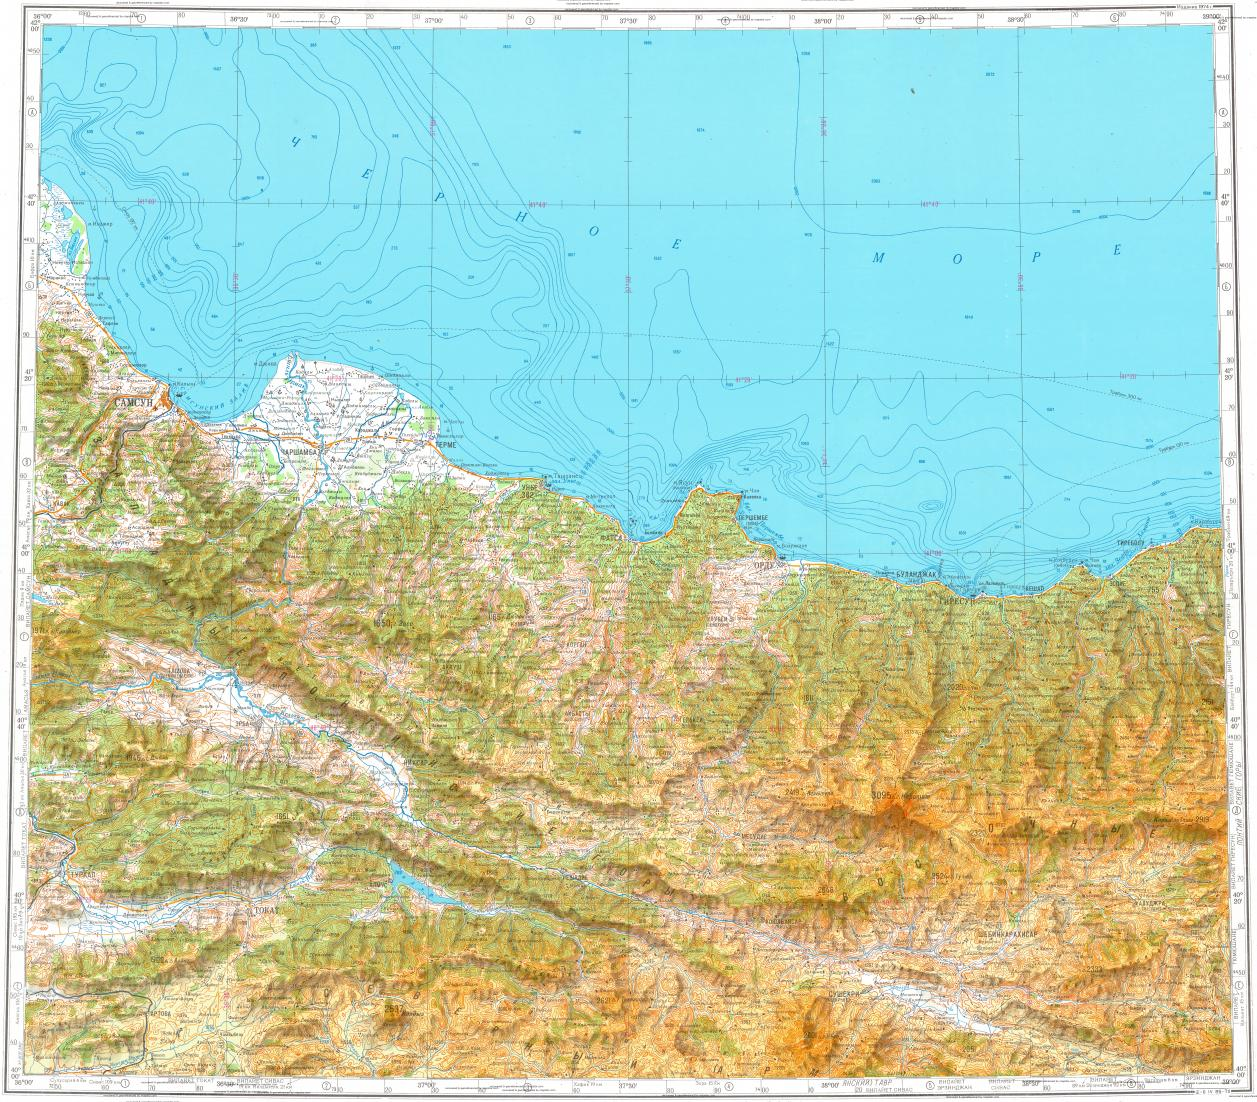 Download topographic map in area of Samsun Giresun Ordu mapstorcom